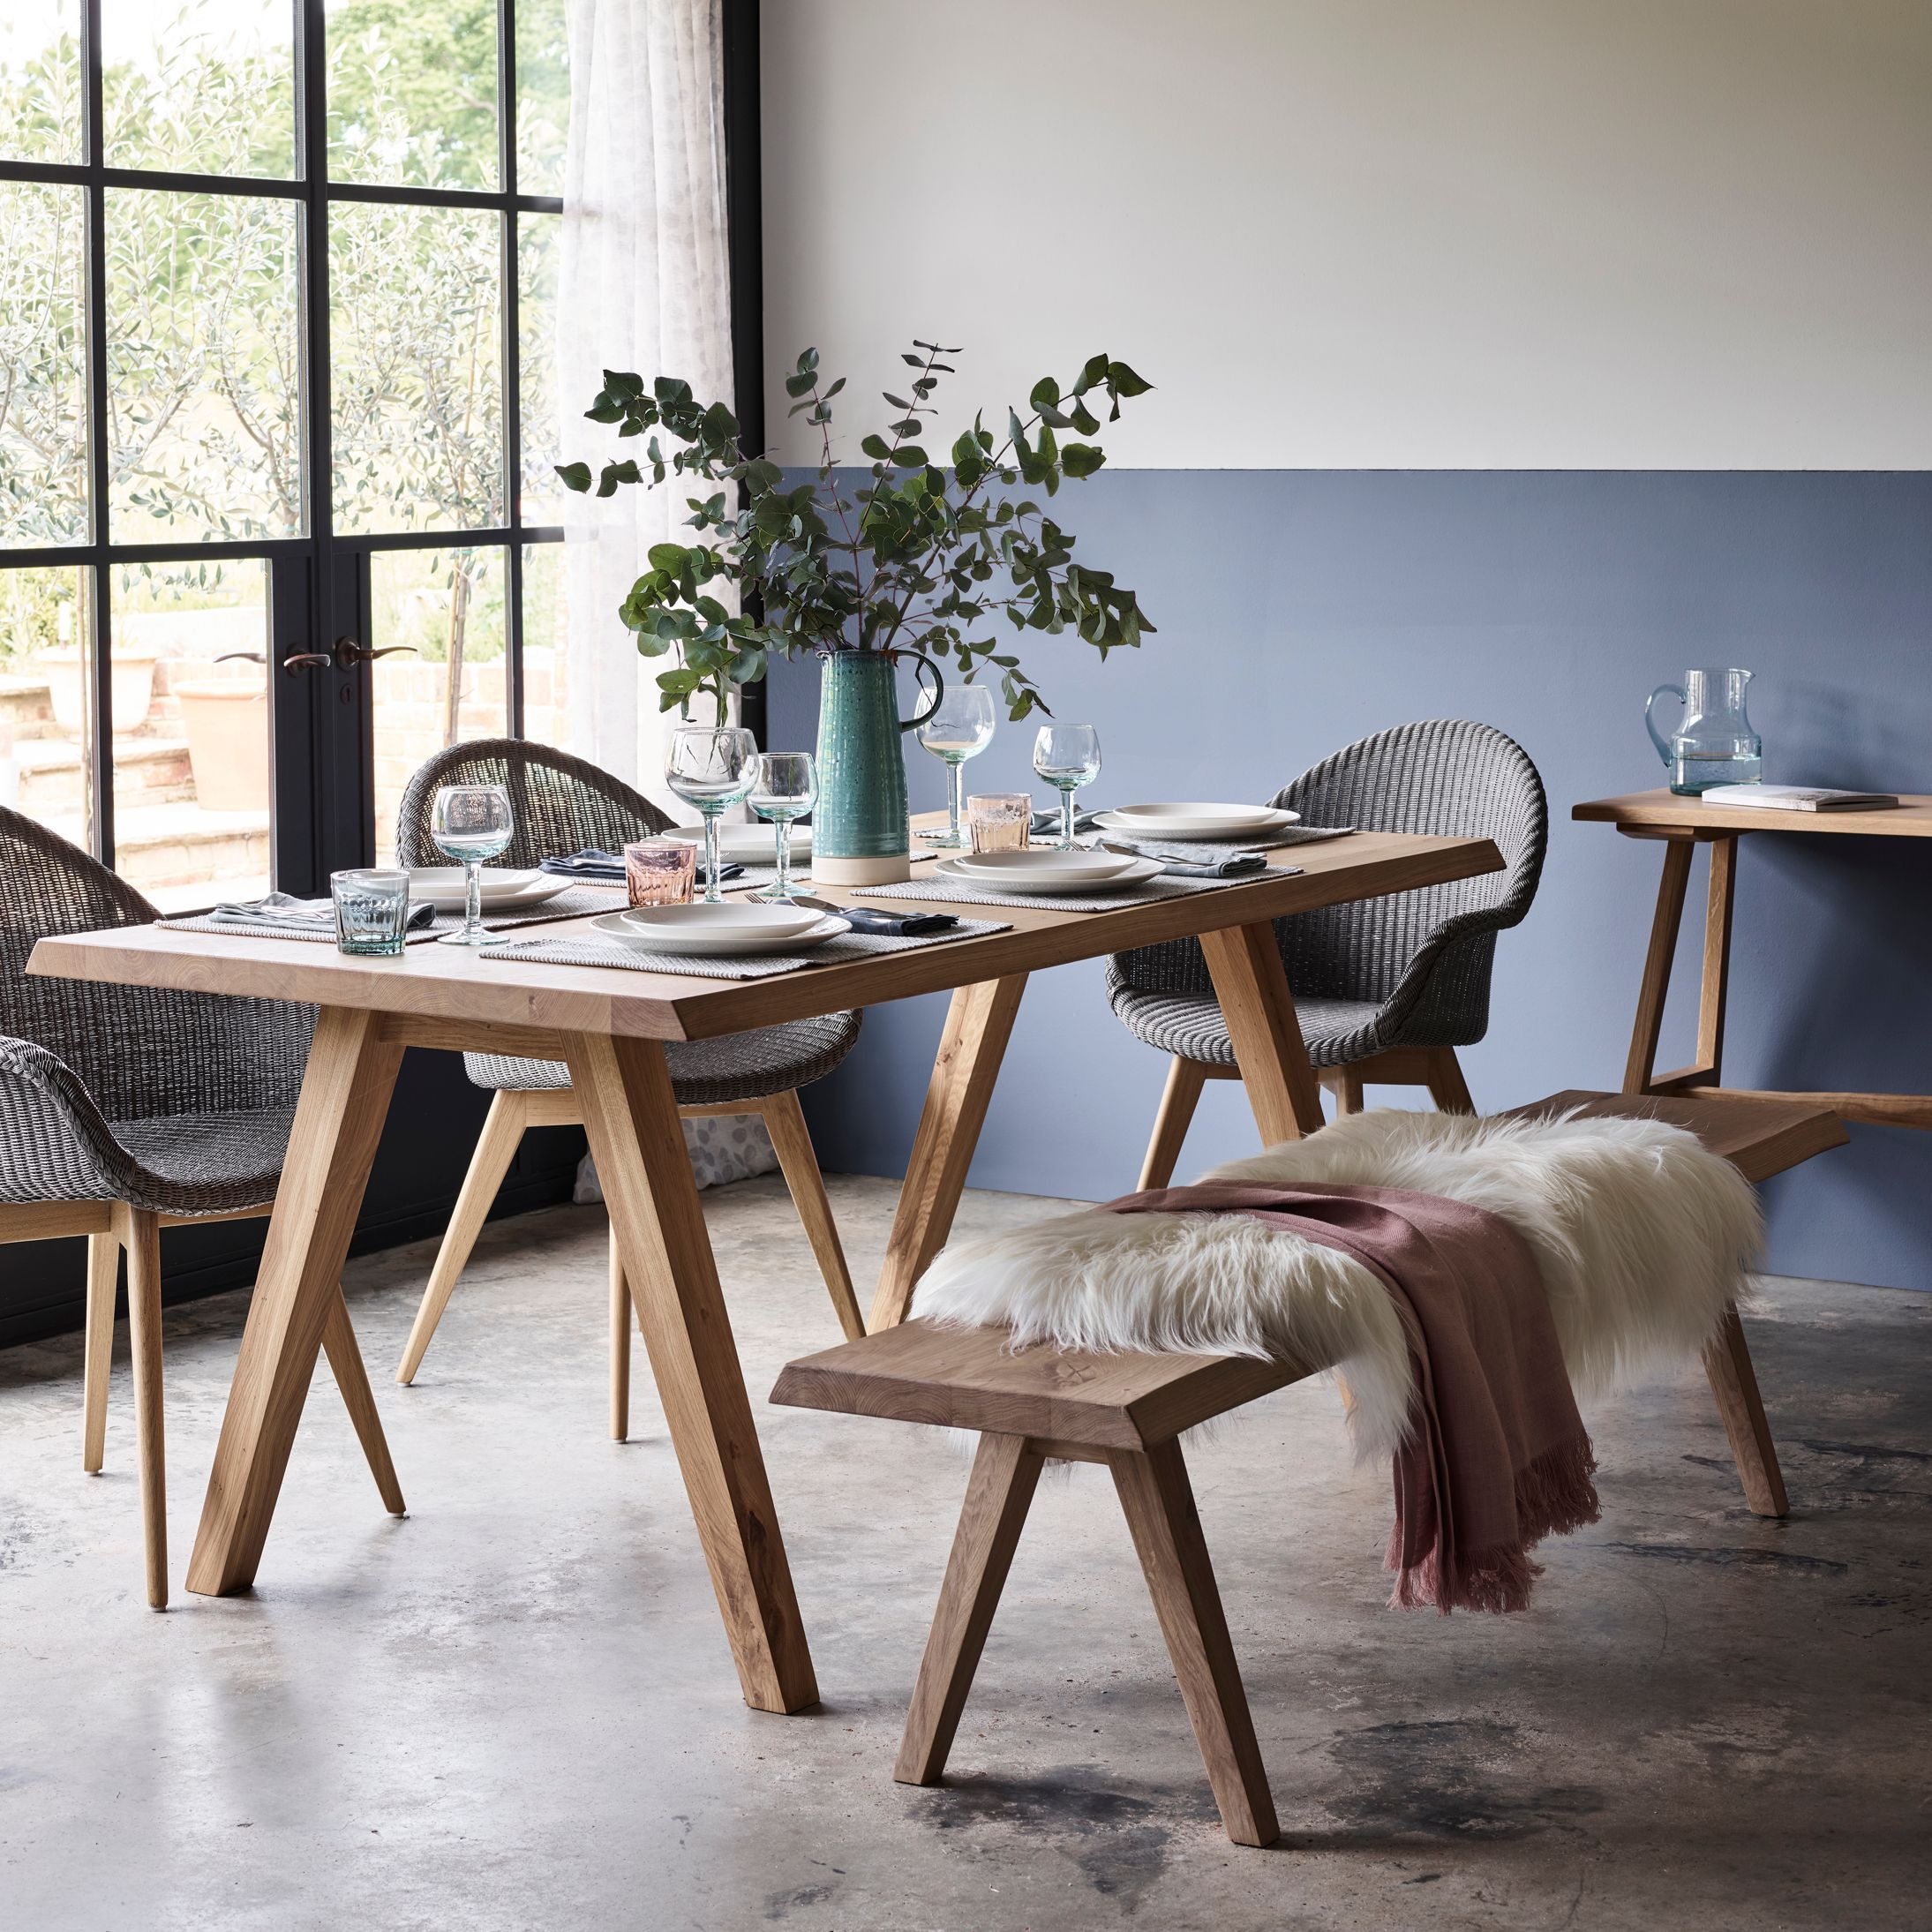 Croft Collection Easdale Lloyd Loom Dining Chair Quartz Grey Chair Collection Croft Dining Eas In 2020 6 Seater Dining Table Dining Room Bench Dining Table Chairs